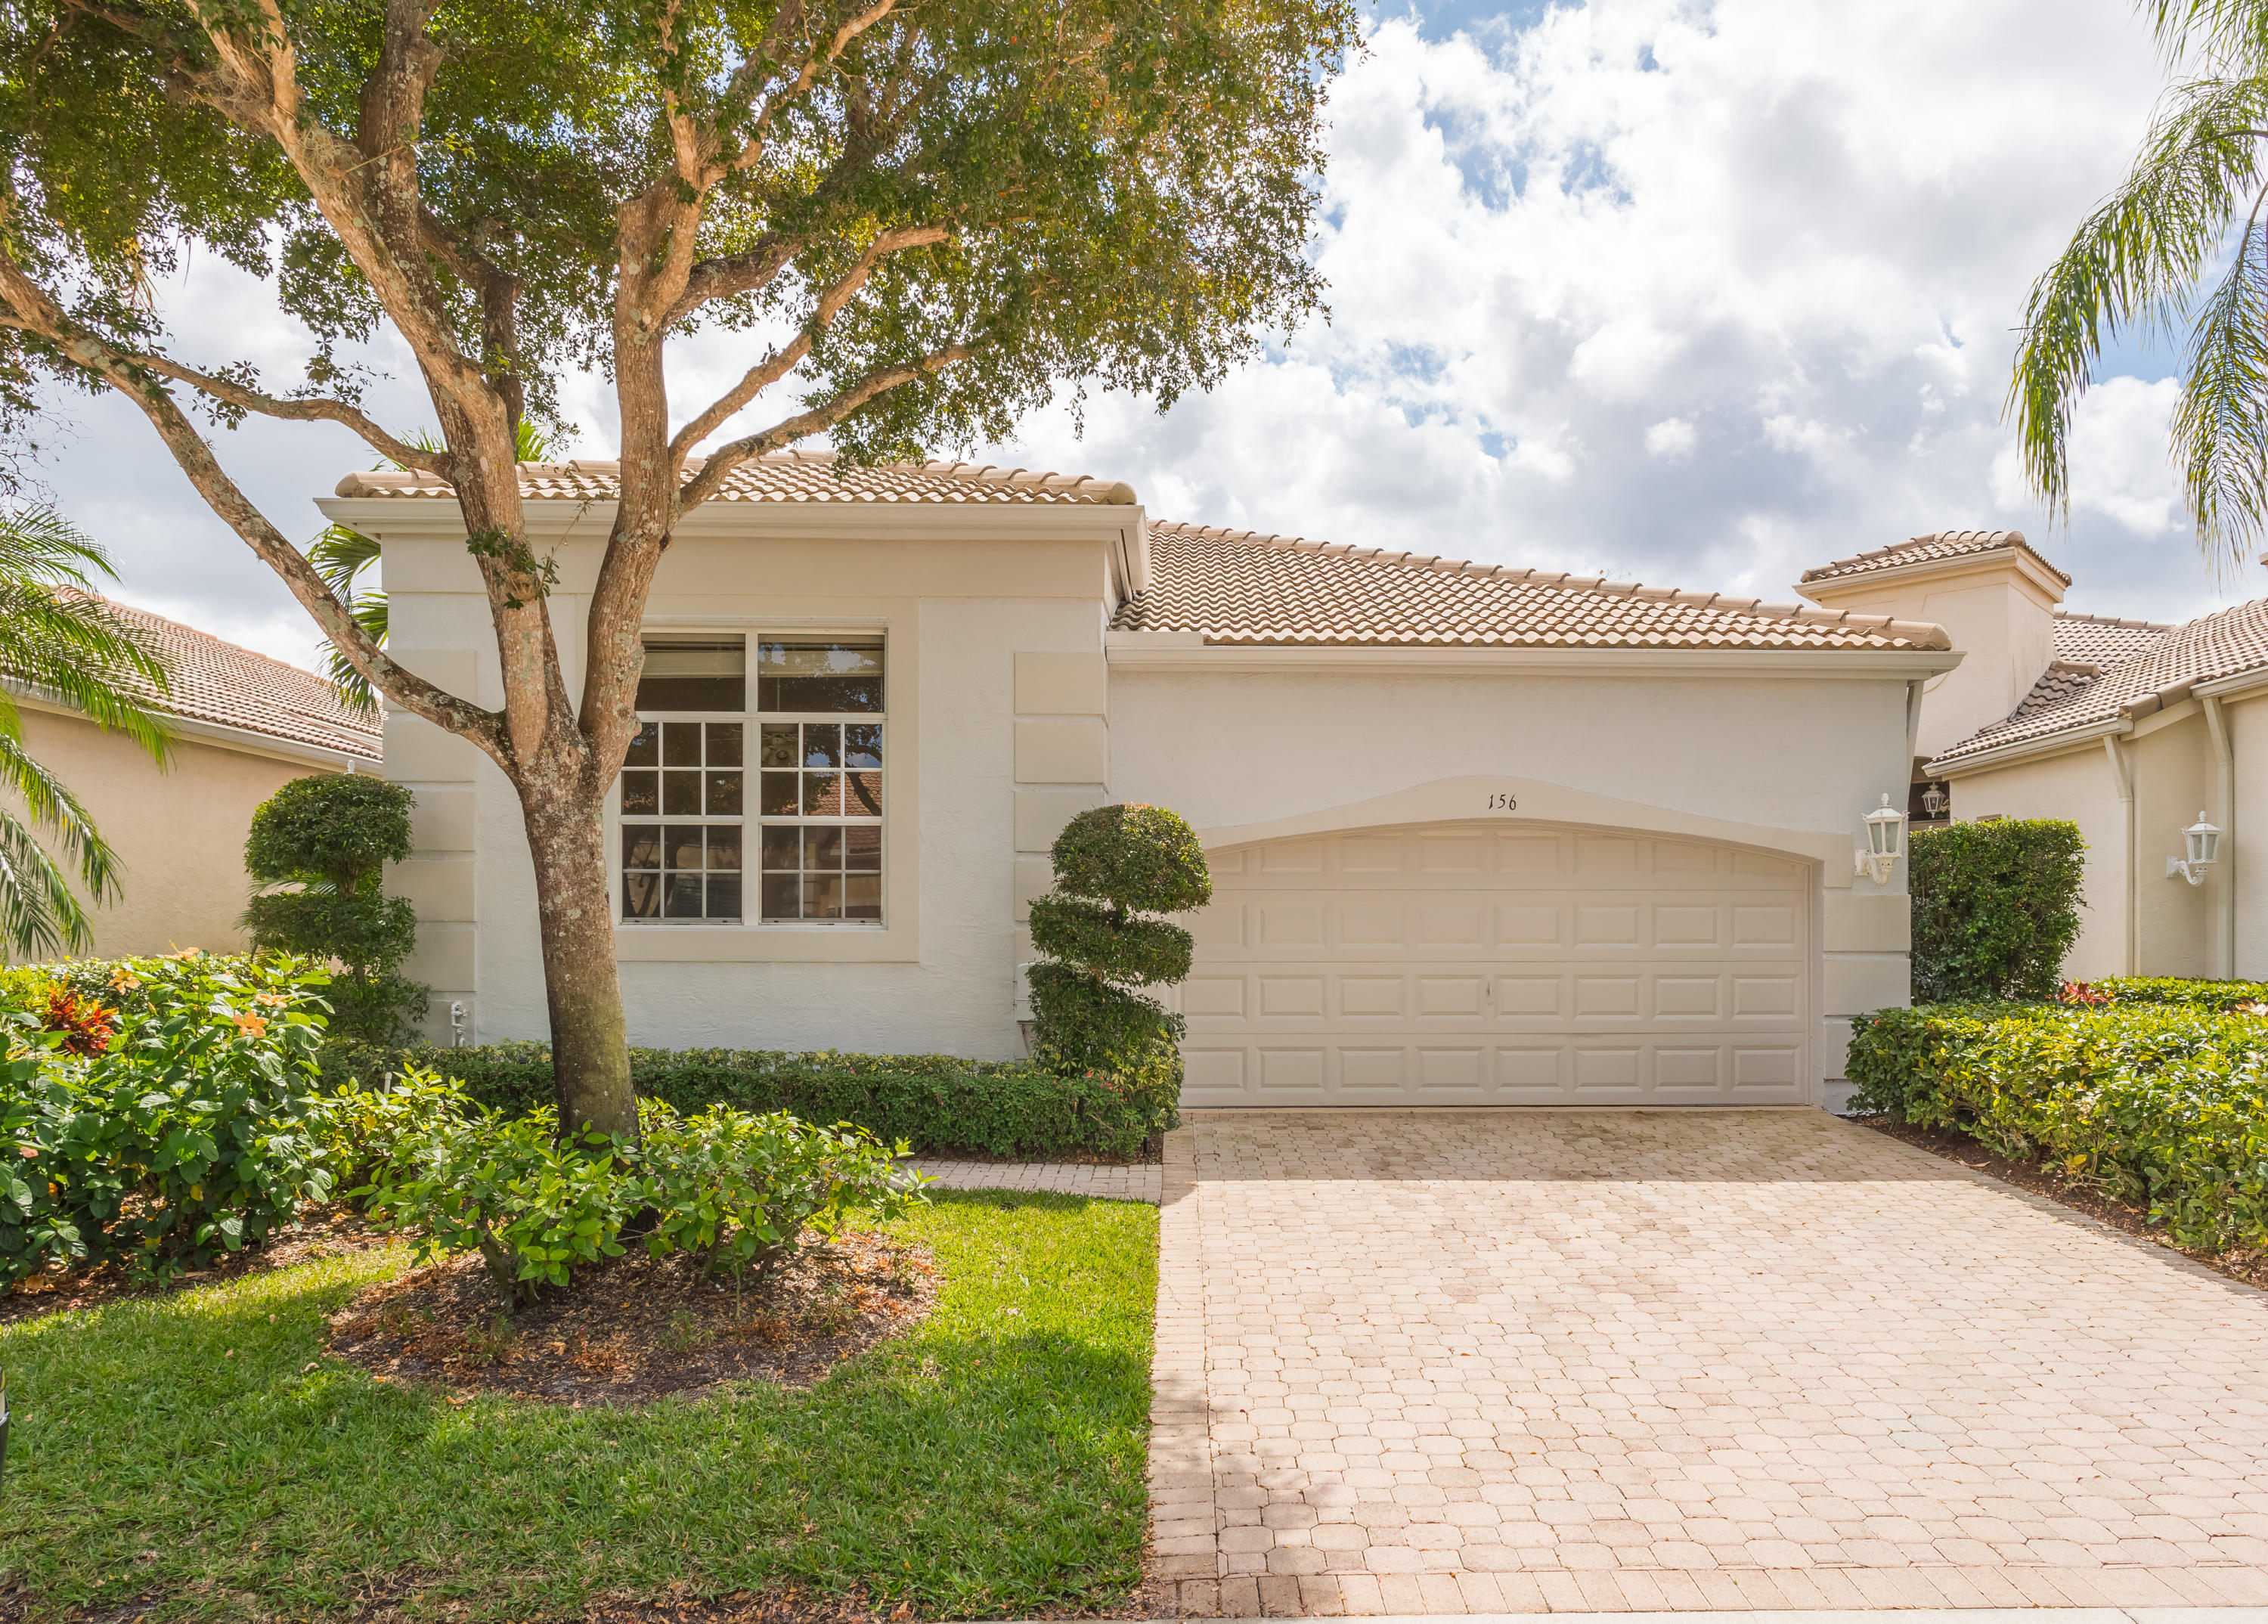 156 Sunset Bay Drive, Palm Beach Gardens, Florida 33418, 3 Bedrooms Bedrooms, ,2.1 BathroomsBathrooms,A,Single family,Sunset Bay,RX-10470622